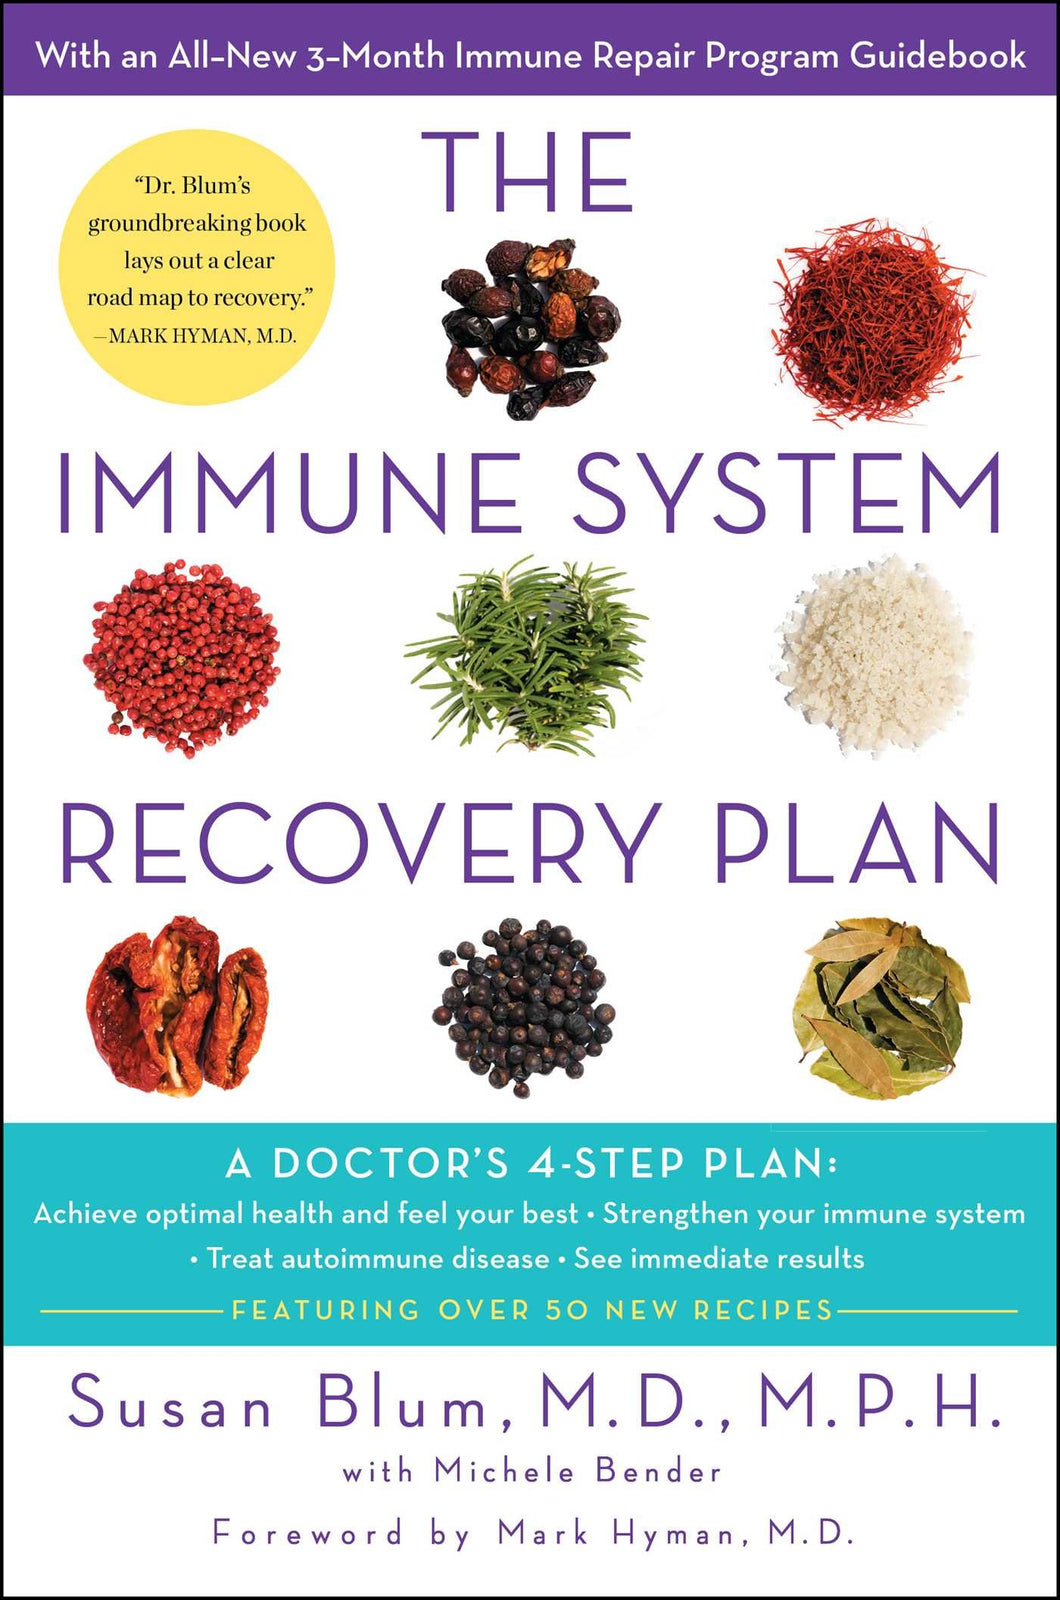 The Immune System Recovery Plan: A Doctor's 4-Step Program to Treat Autoimmune Disease. - Tolerant Planet